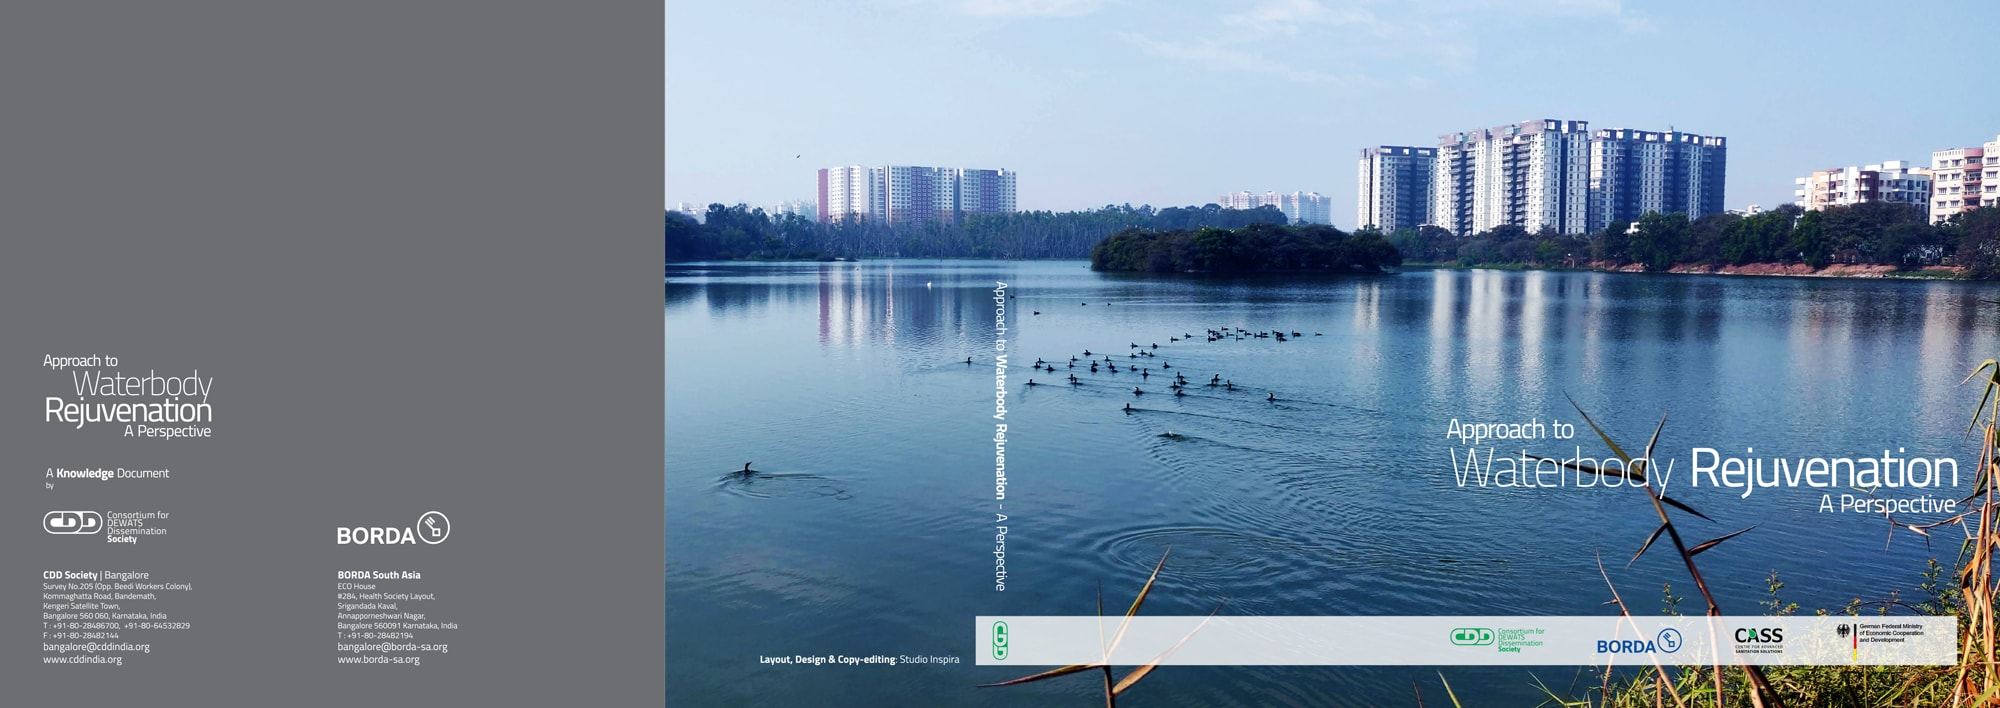 Knowledge Document: Approach to Waterbody Rejuvenation - A Perspective